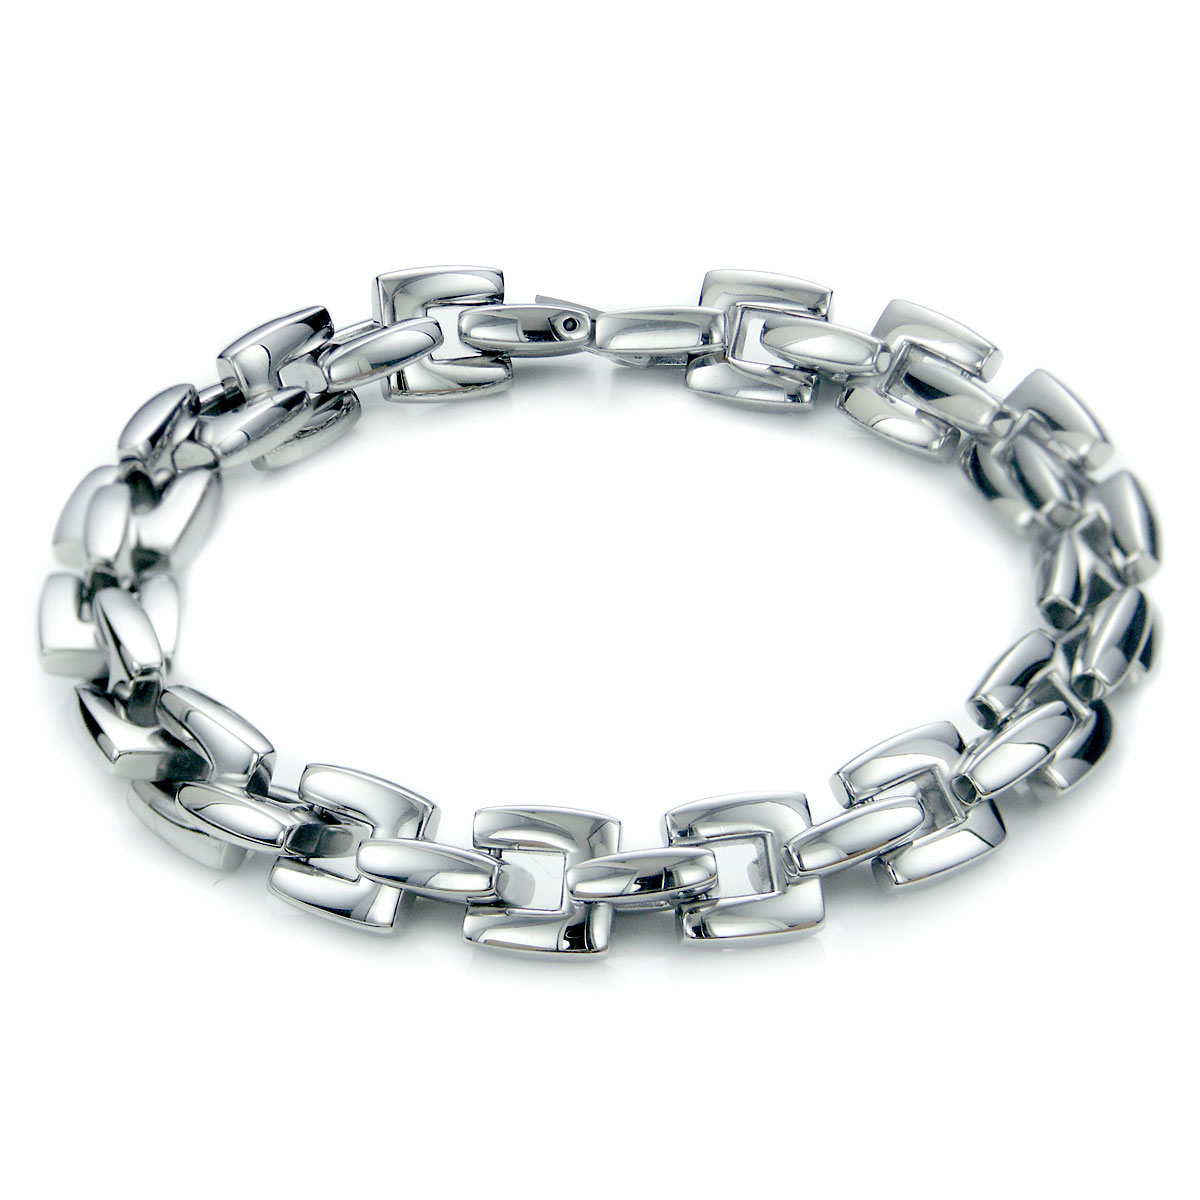 Stainless Steel Men's Large Box Link Bracelet